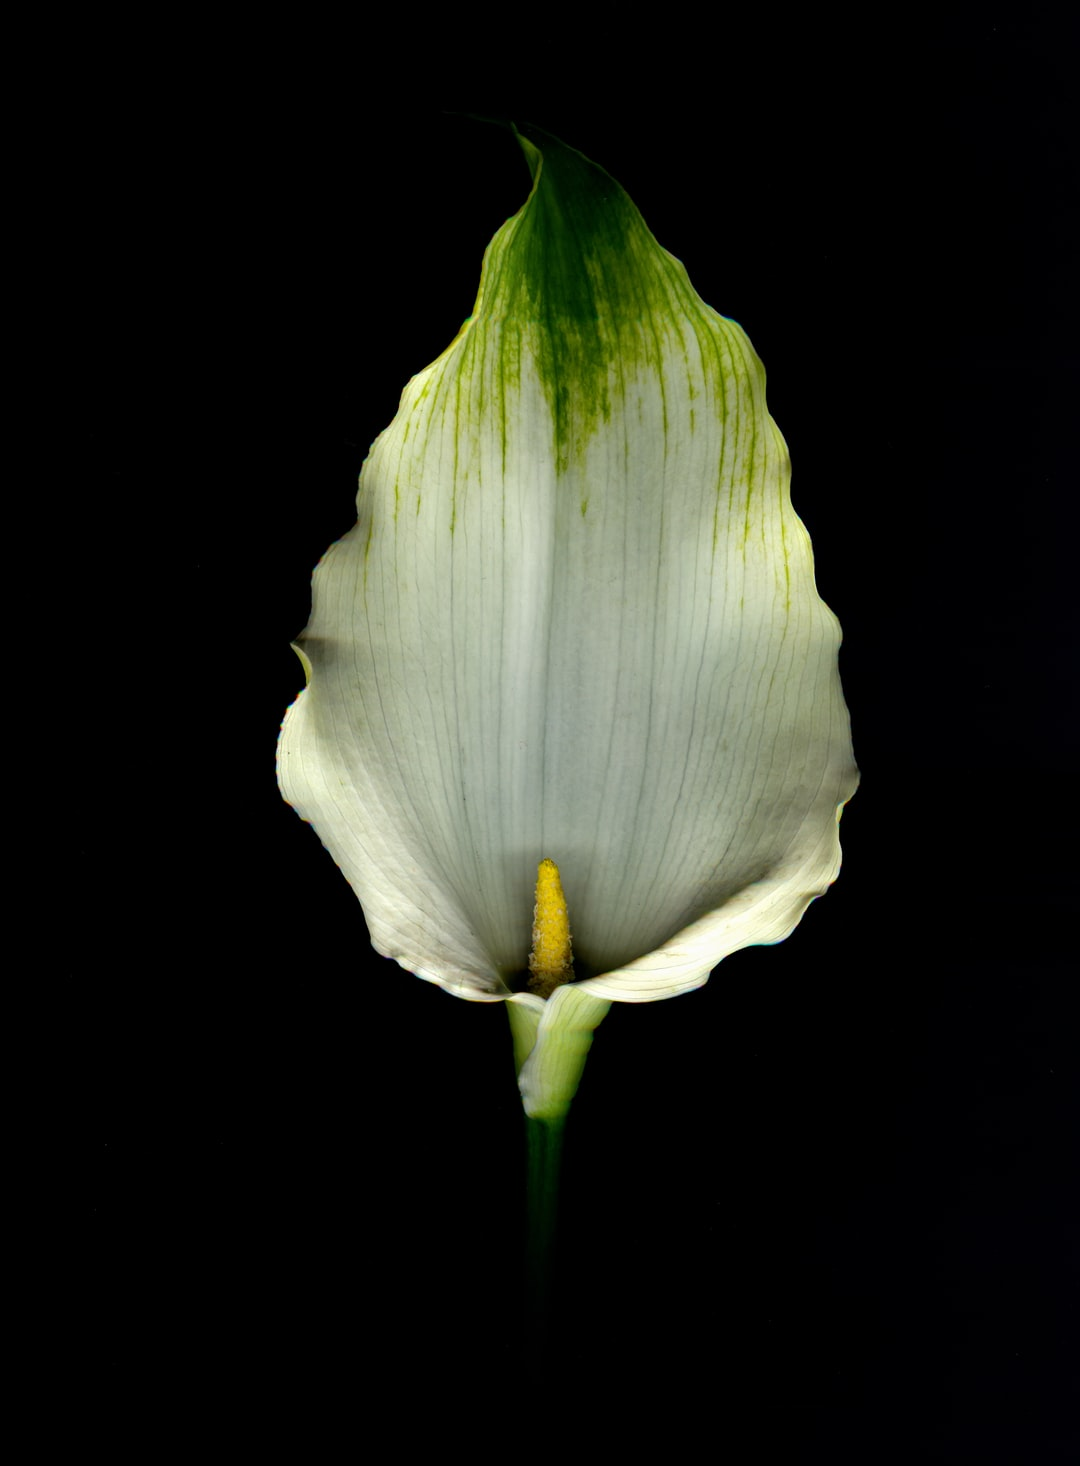 Calla lily pictures download free images on unsplash izmirmasajfo